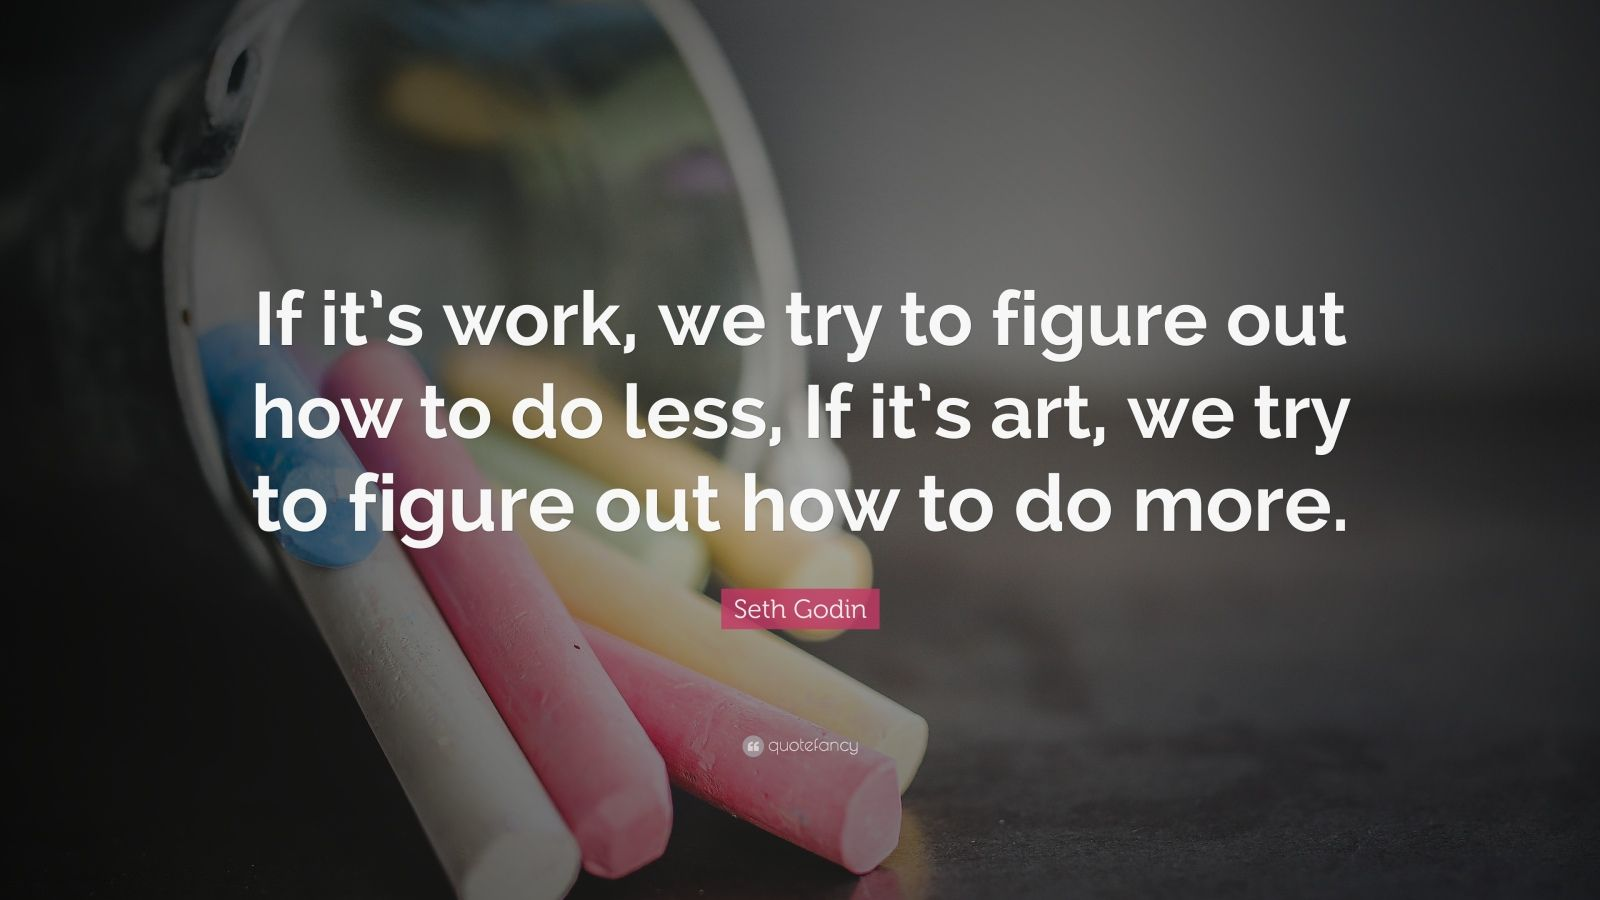 """Seth Godin Quote: """"If it's work, we try to figure out how to do less, If it's art, we try to figure out how to do more."""""""